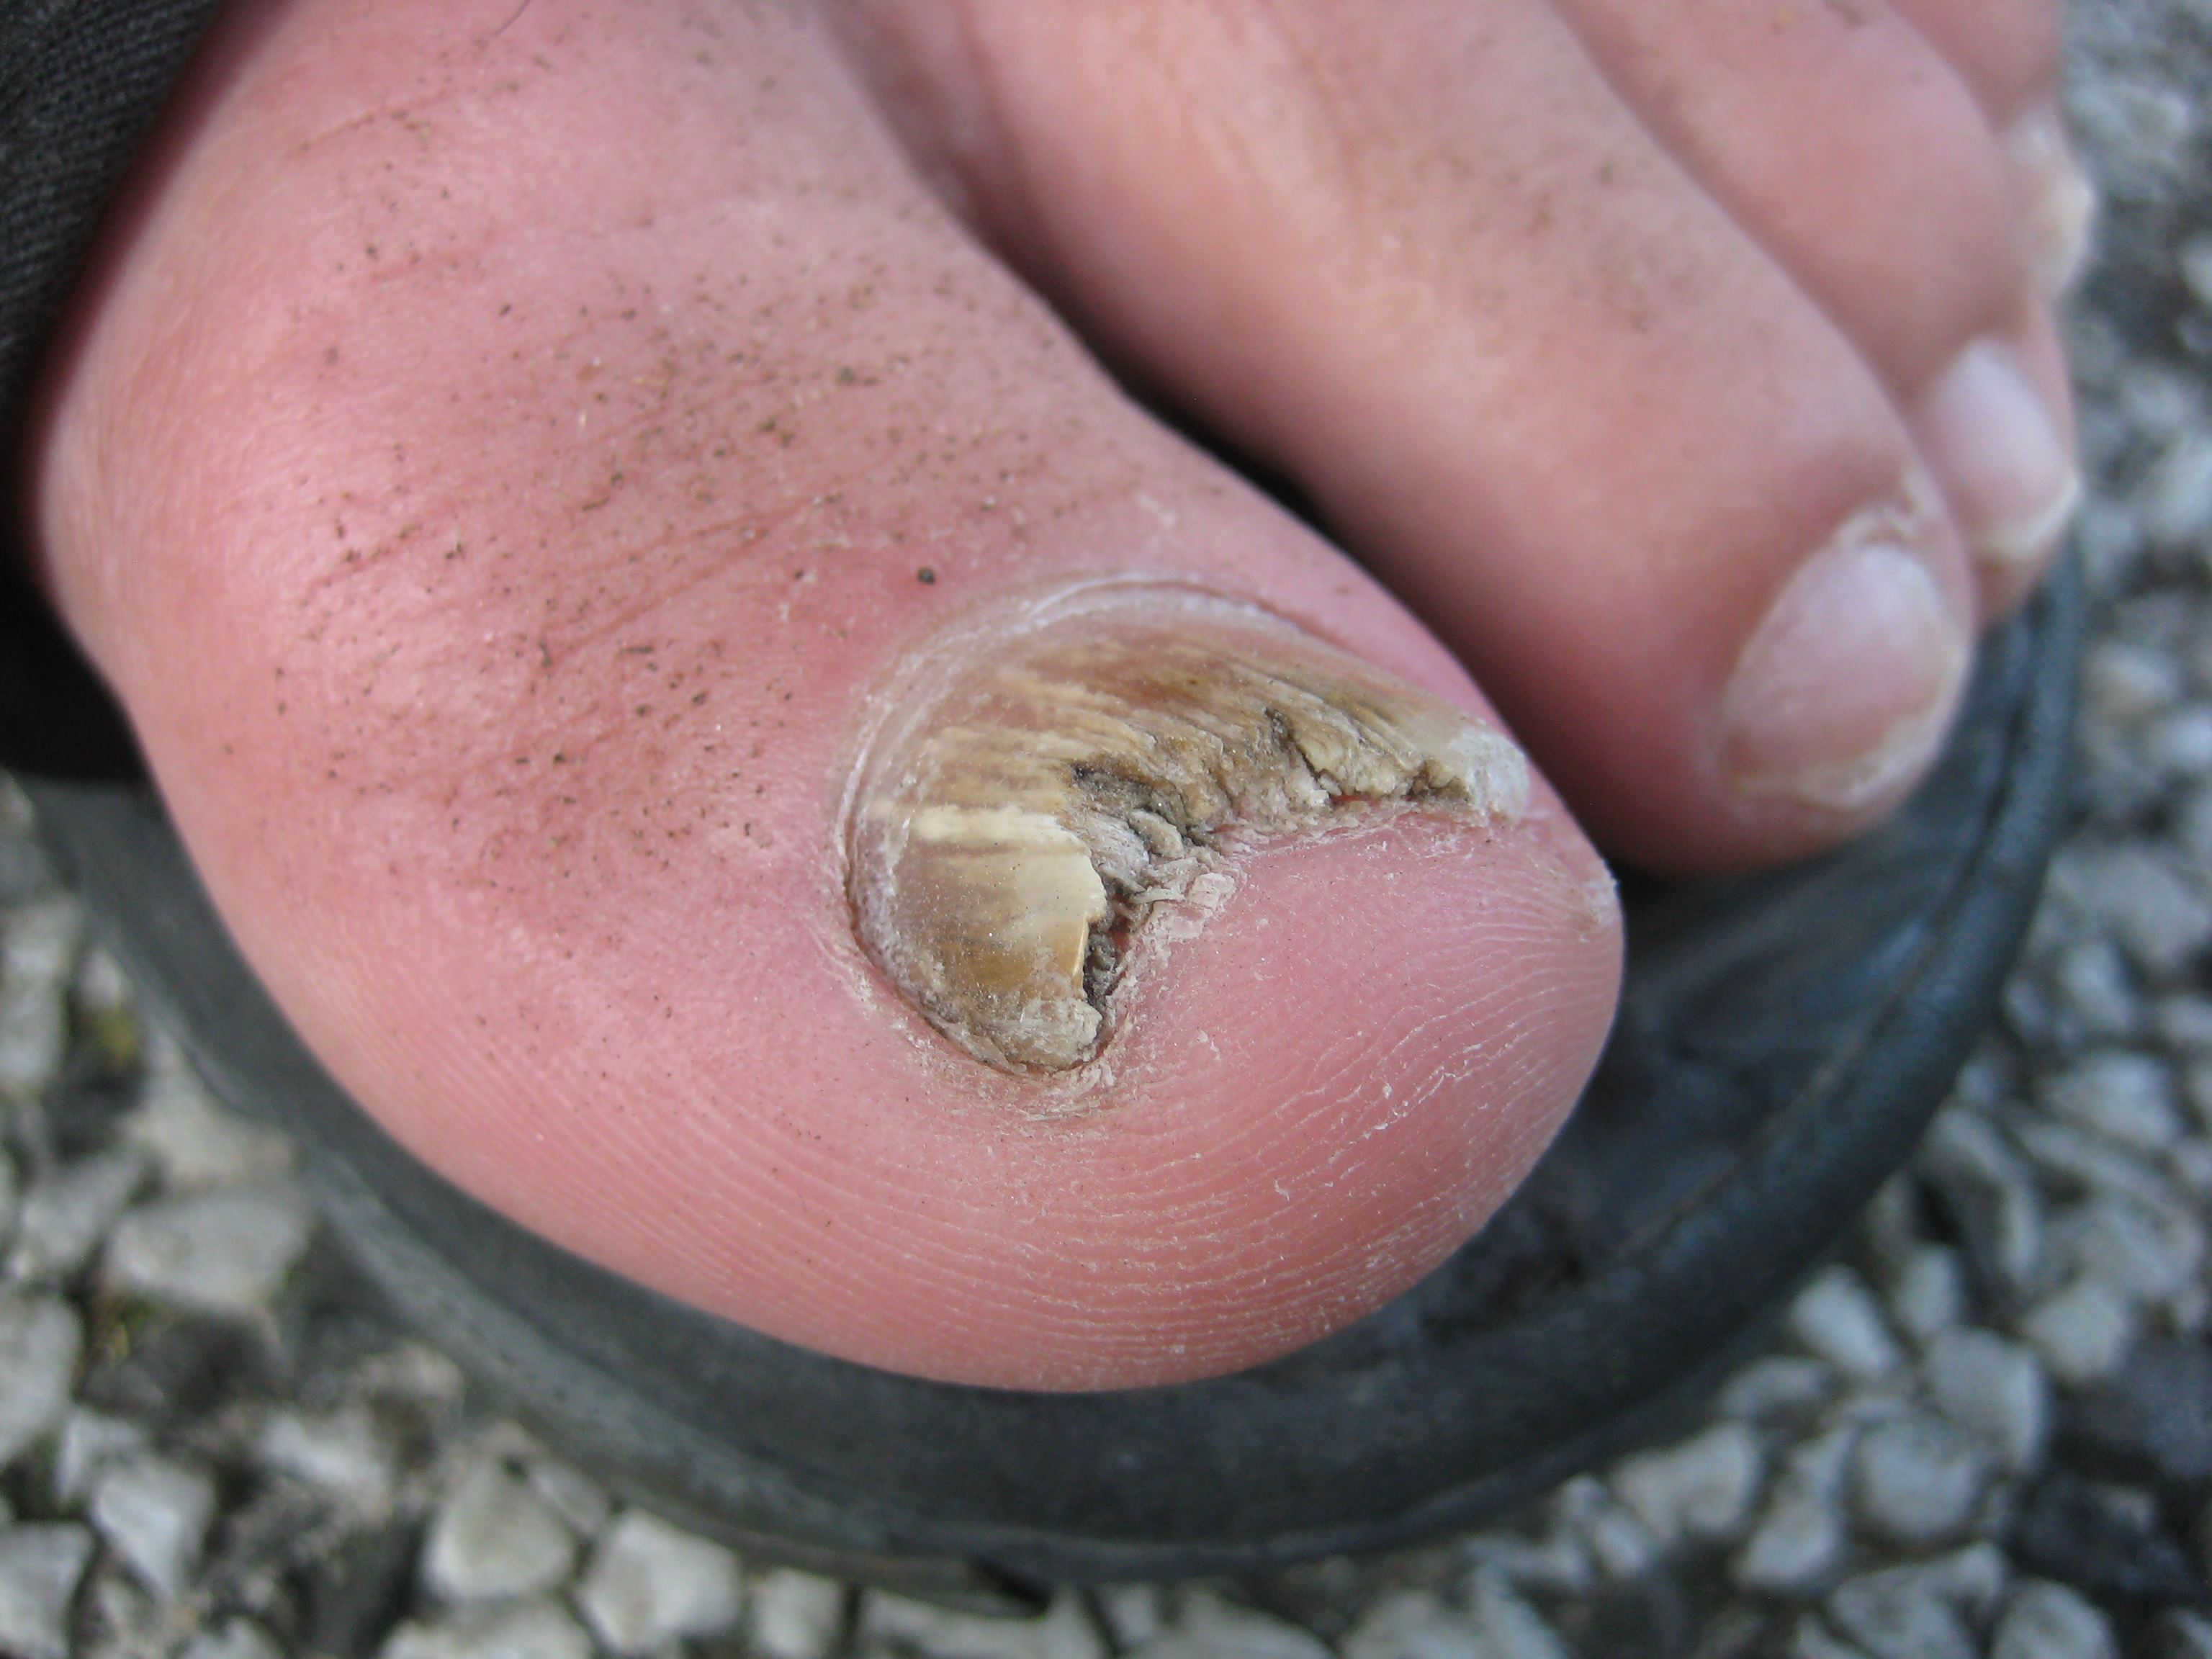 Causes of Nail Fungus & Symptoms of Toenail Infections